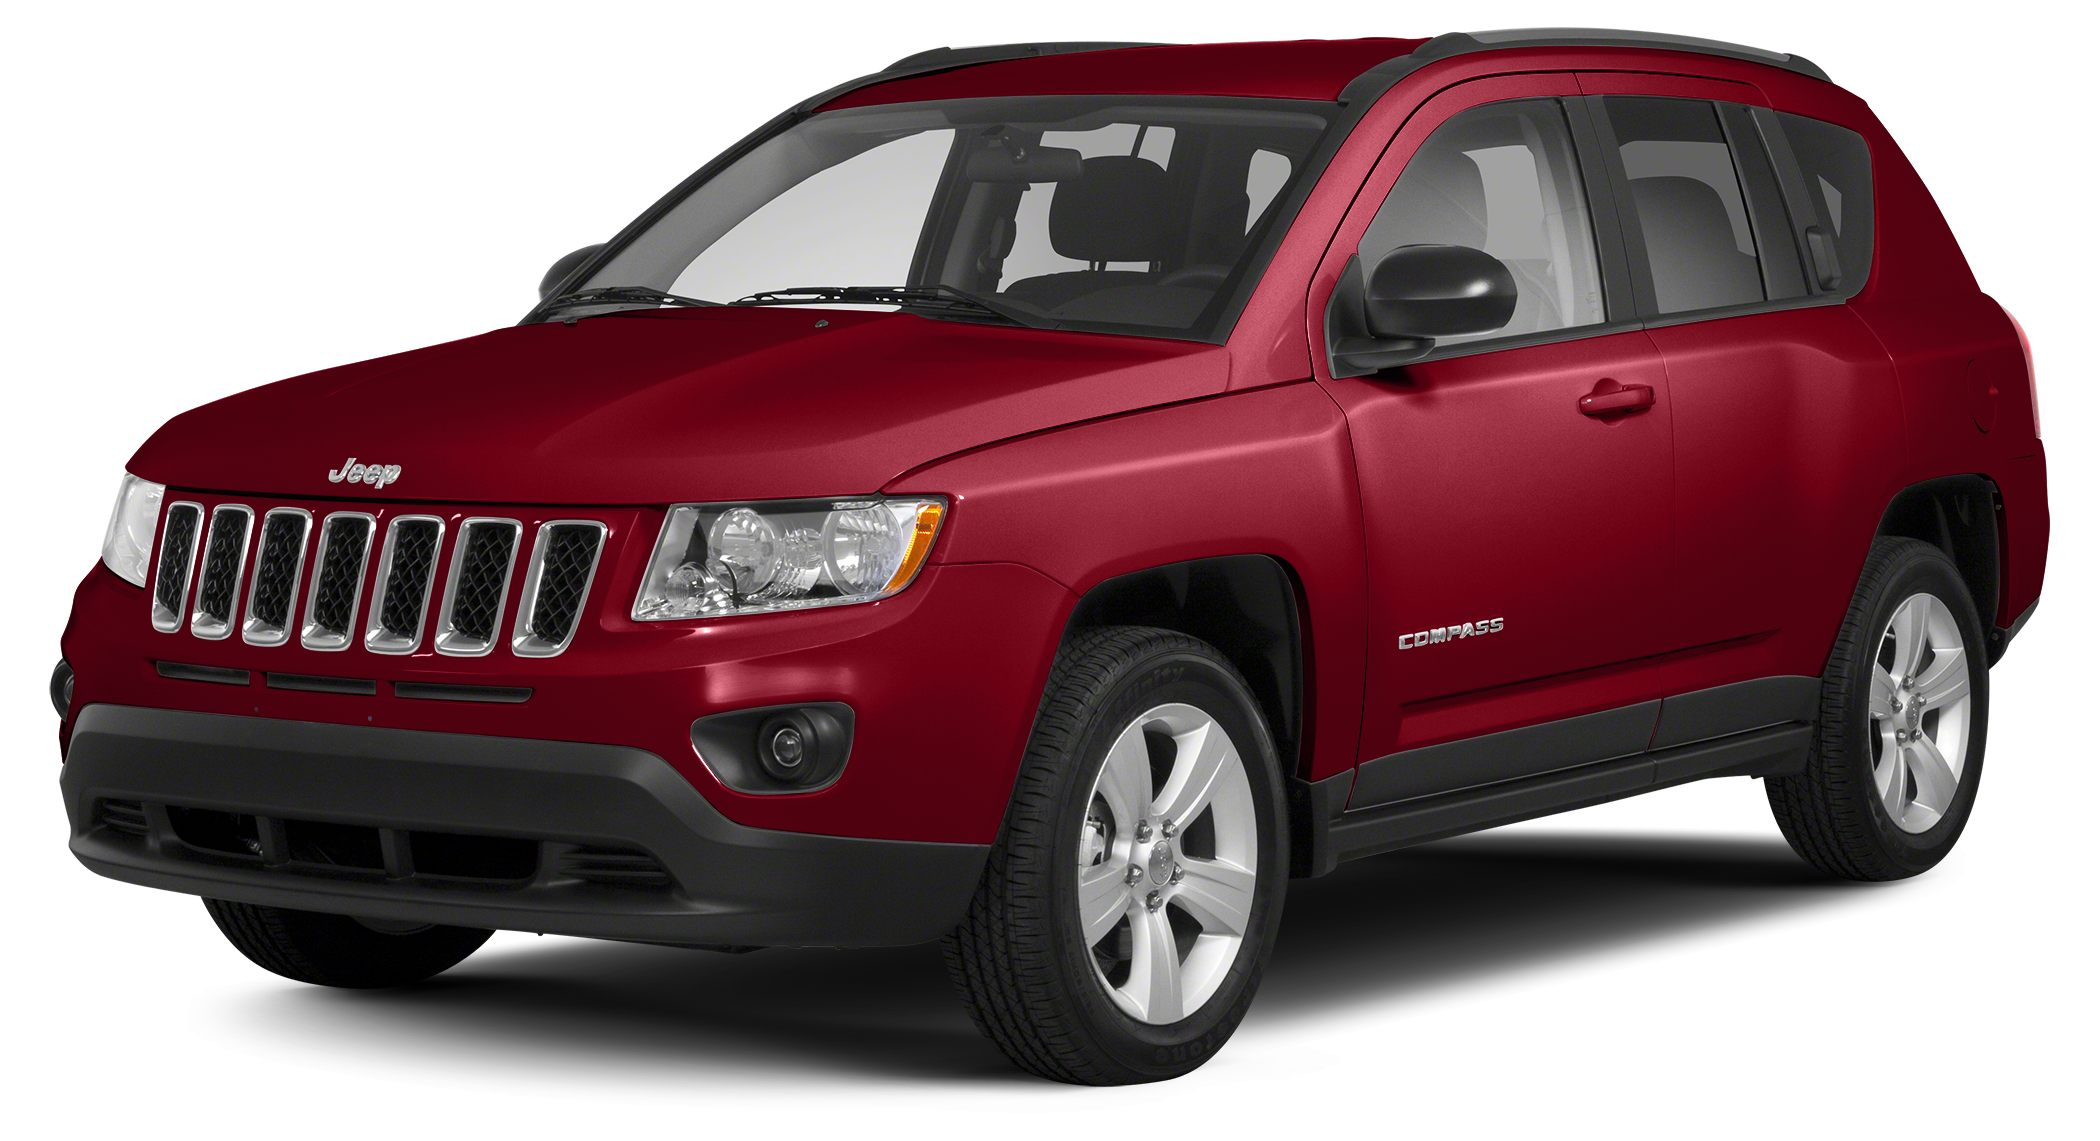 2013 Jeep Compass Latitude CARFAX 1-Owner ONLY 39818 Miles FUEL EFFICIENT 26 MPG Hwy21 MPG Cit